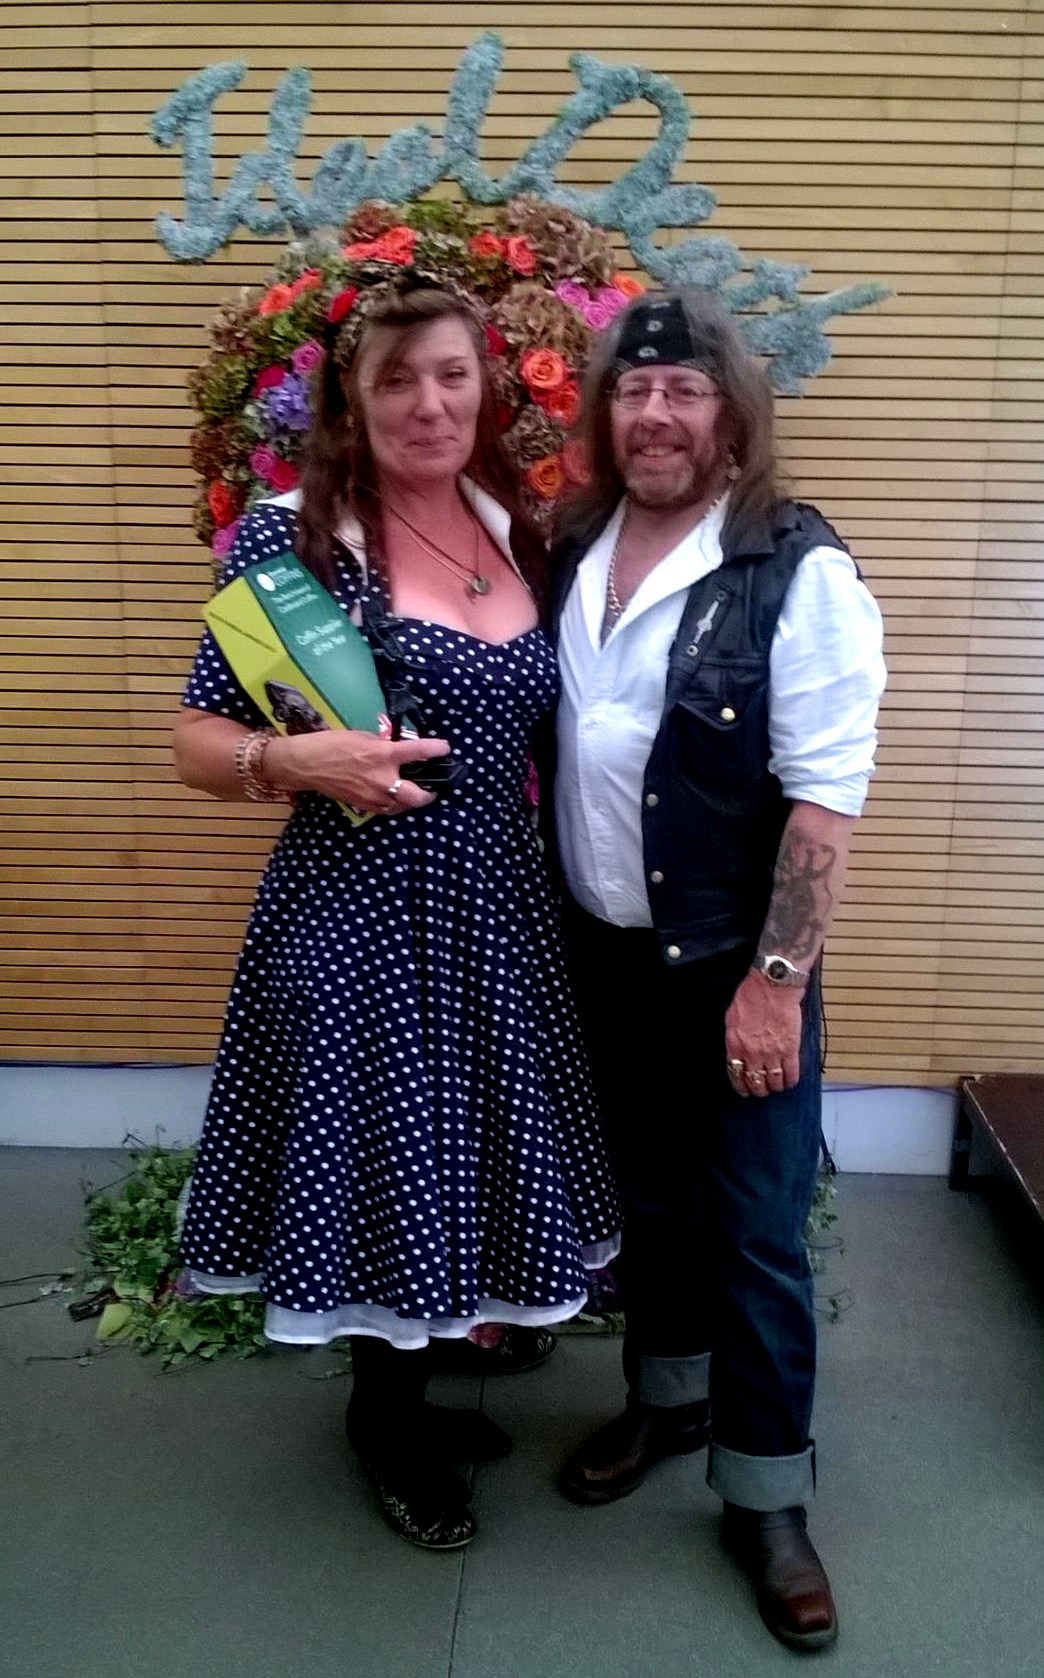 Cath and Tosh at the Good Funeral Awards, 2015.